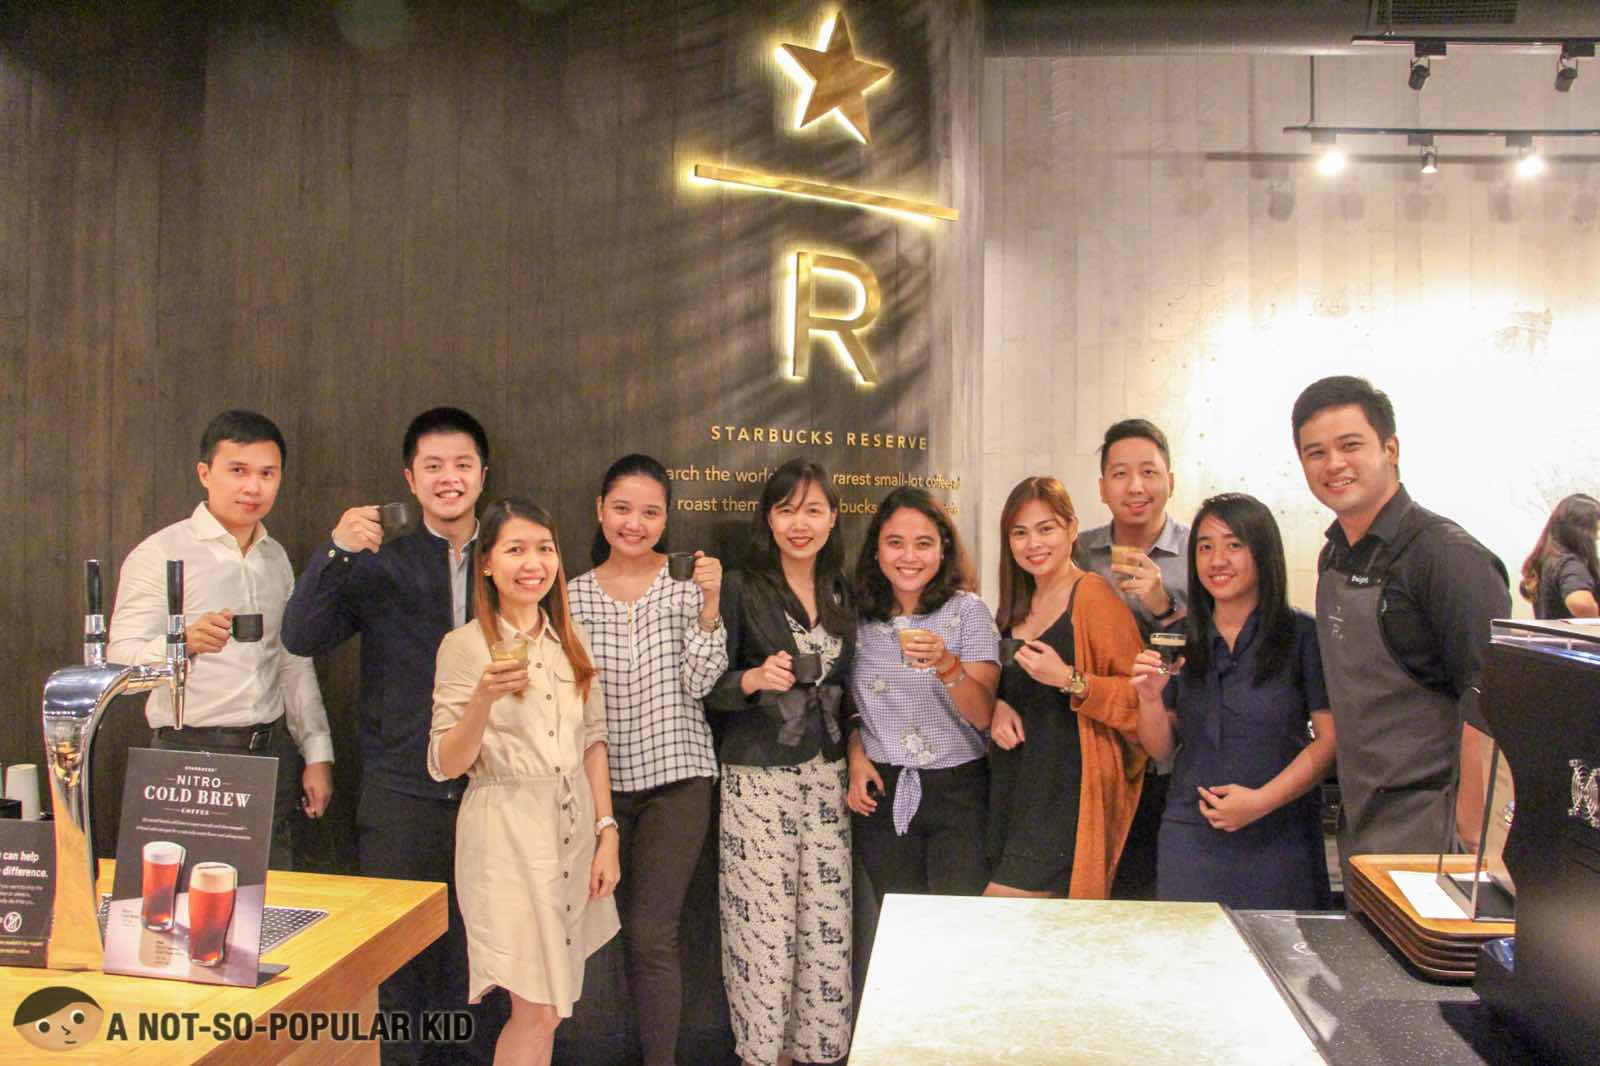 Sabrina Rivas and friends in Starbucks Reserve - Makati